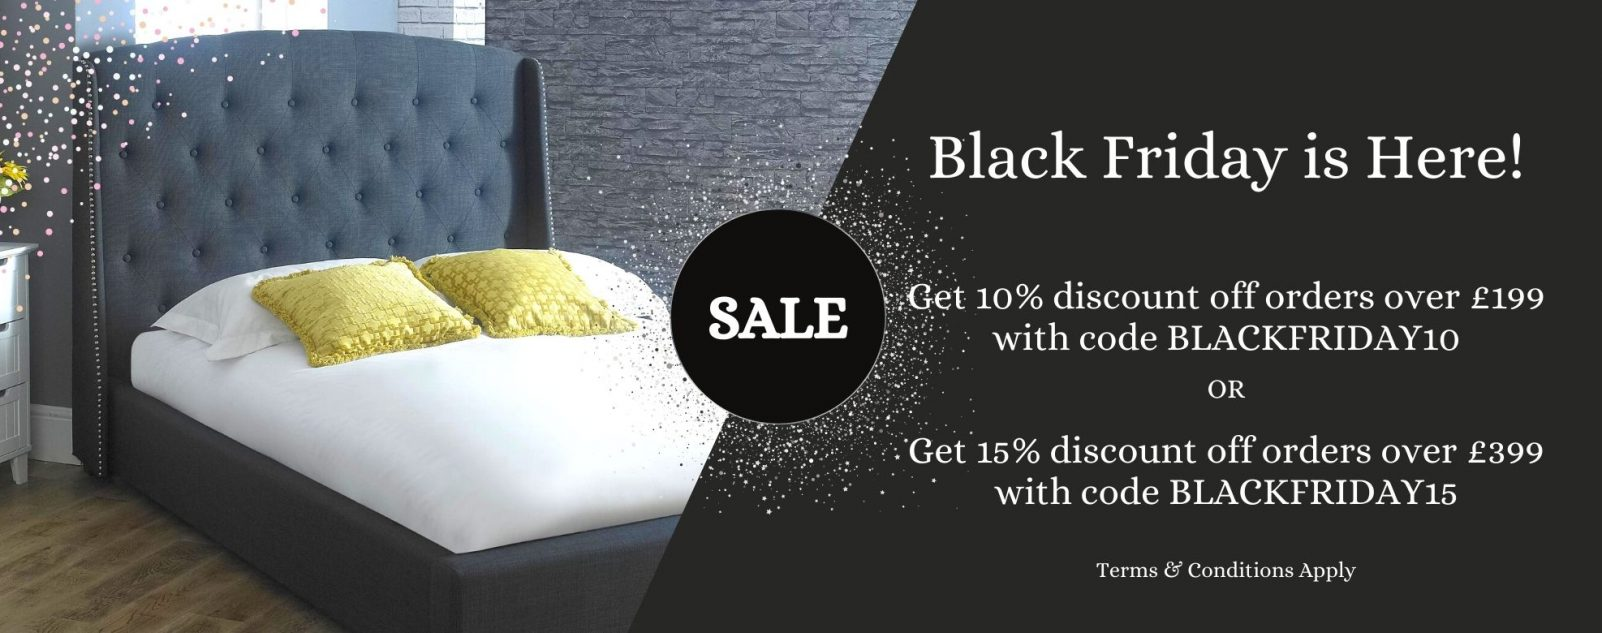 Bishops Beds Black Friday Sale | Discounted Beds and Mattresses